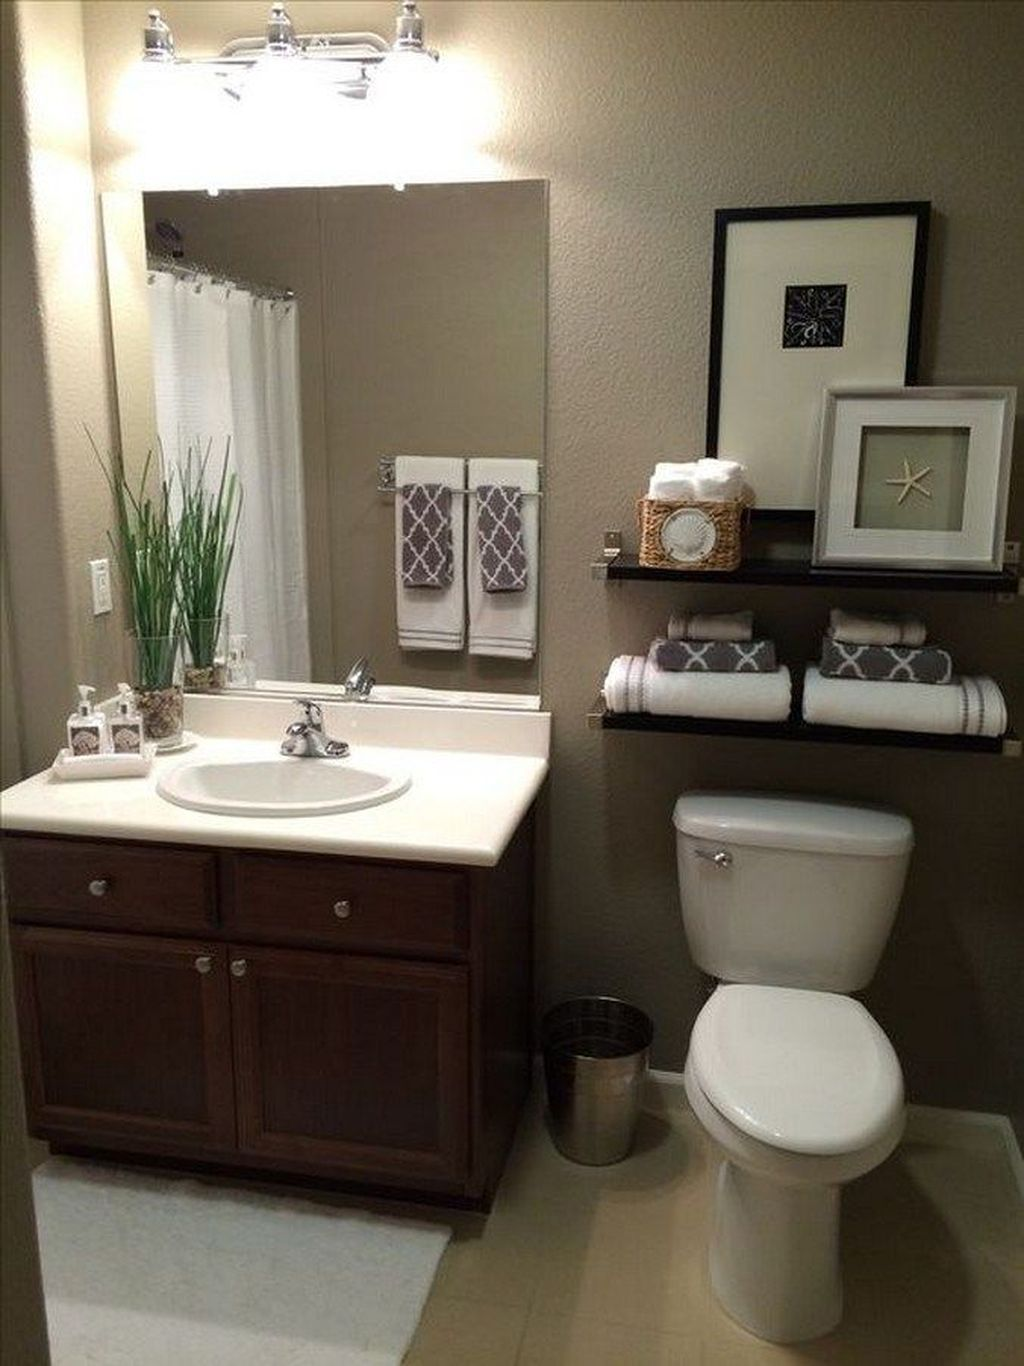 Awesome Small Bathroom Remodel Ideas On A Budget 38